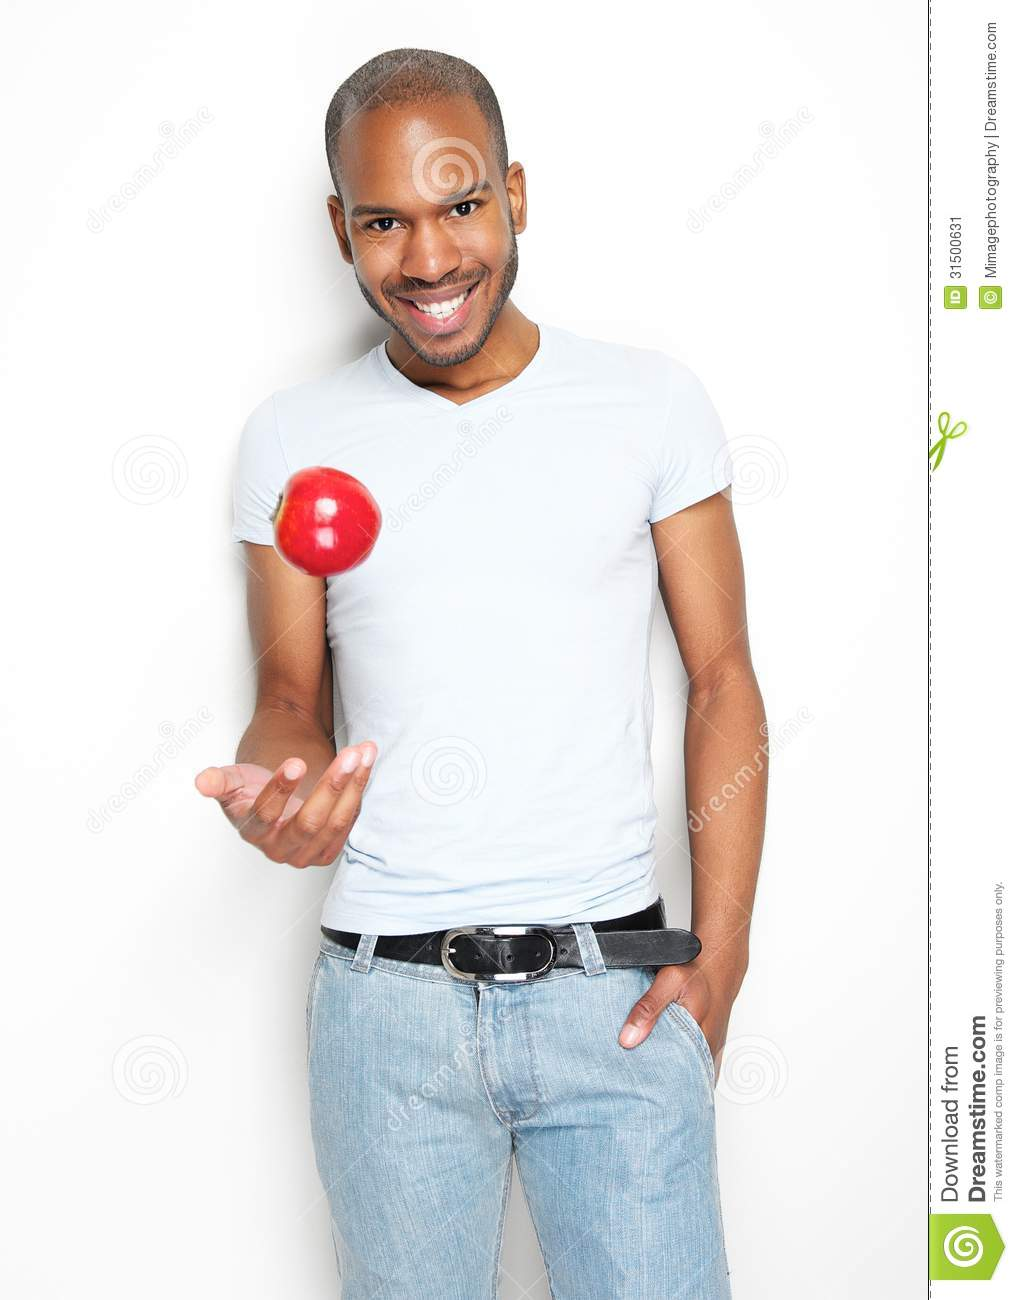 Samu L. Jackson (Would U Be Mad Edition) Healthy-young-man-throwing-up-red-apple-portrait-31500631